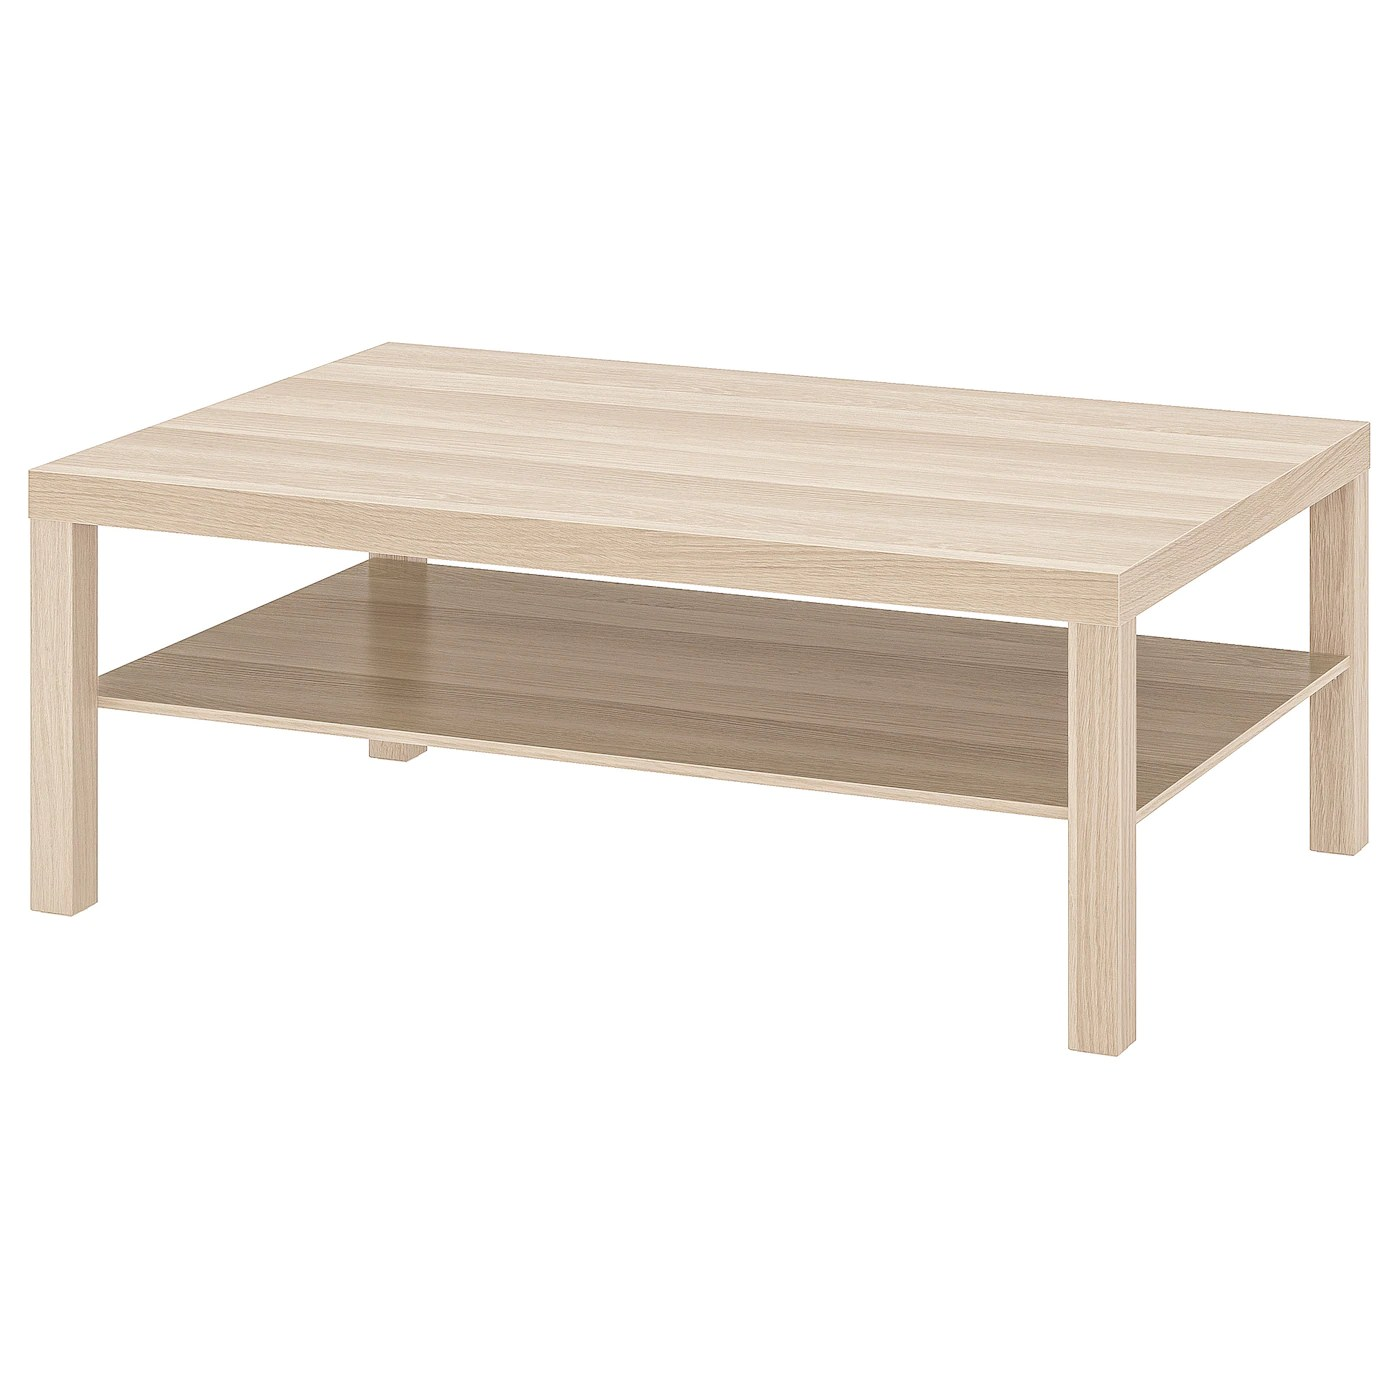 lack coffee table white stained oak effect 118x78 cm